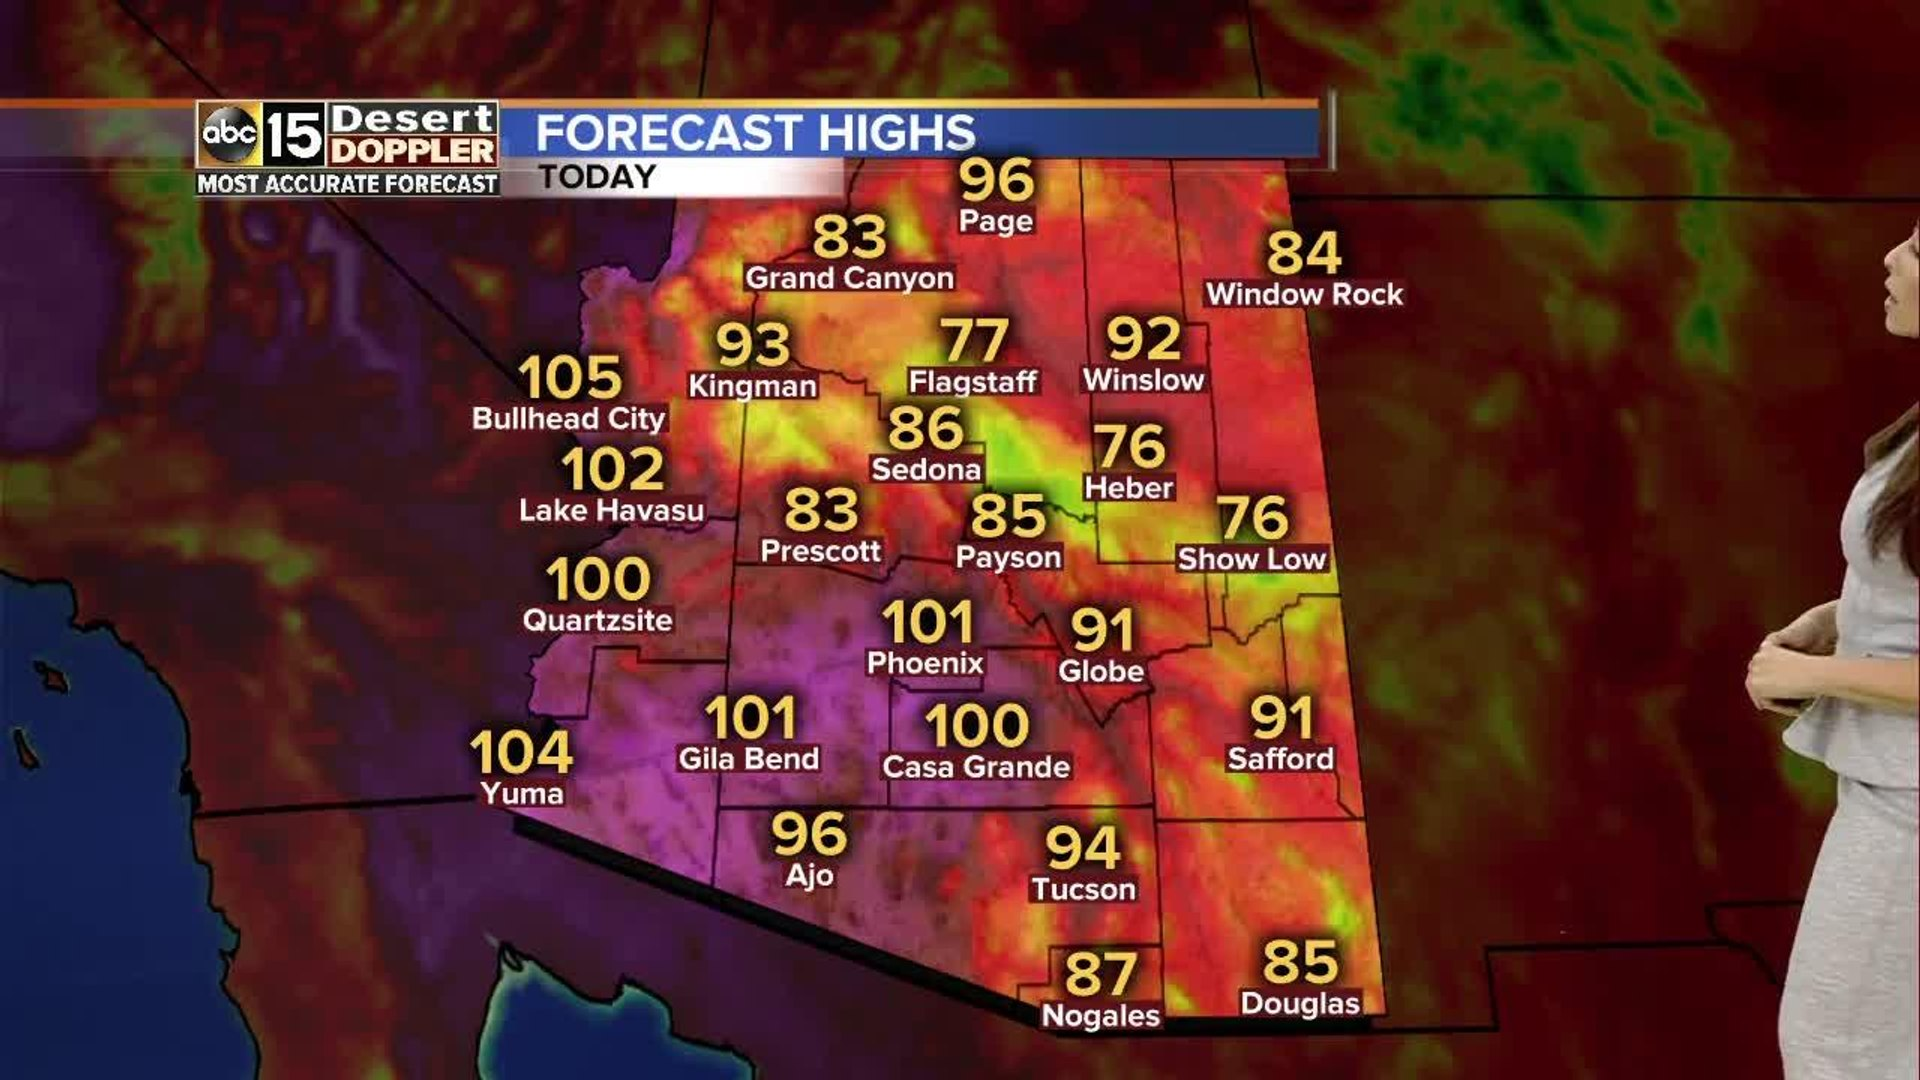 High temperatures hovering above 100 degrees today